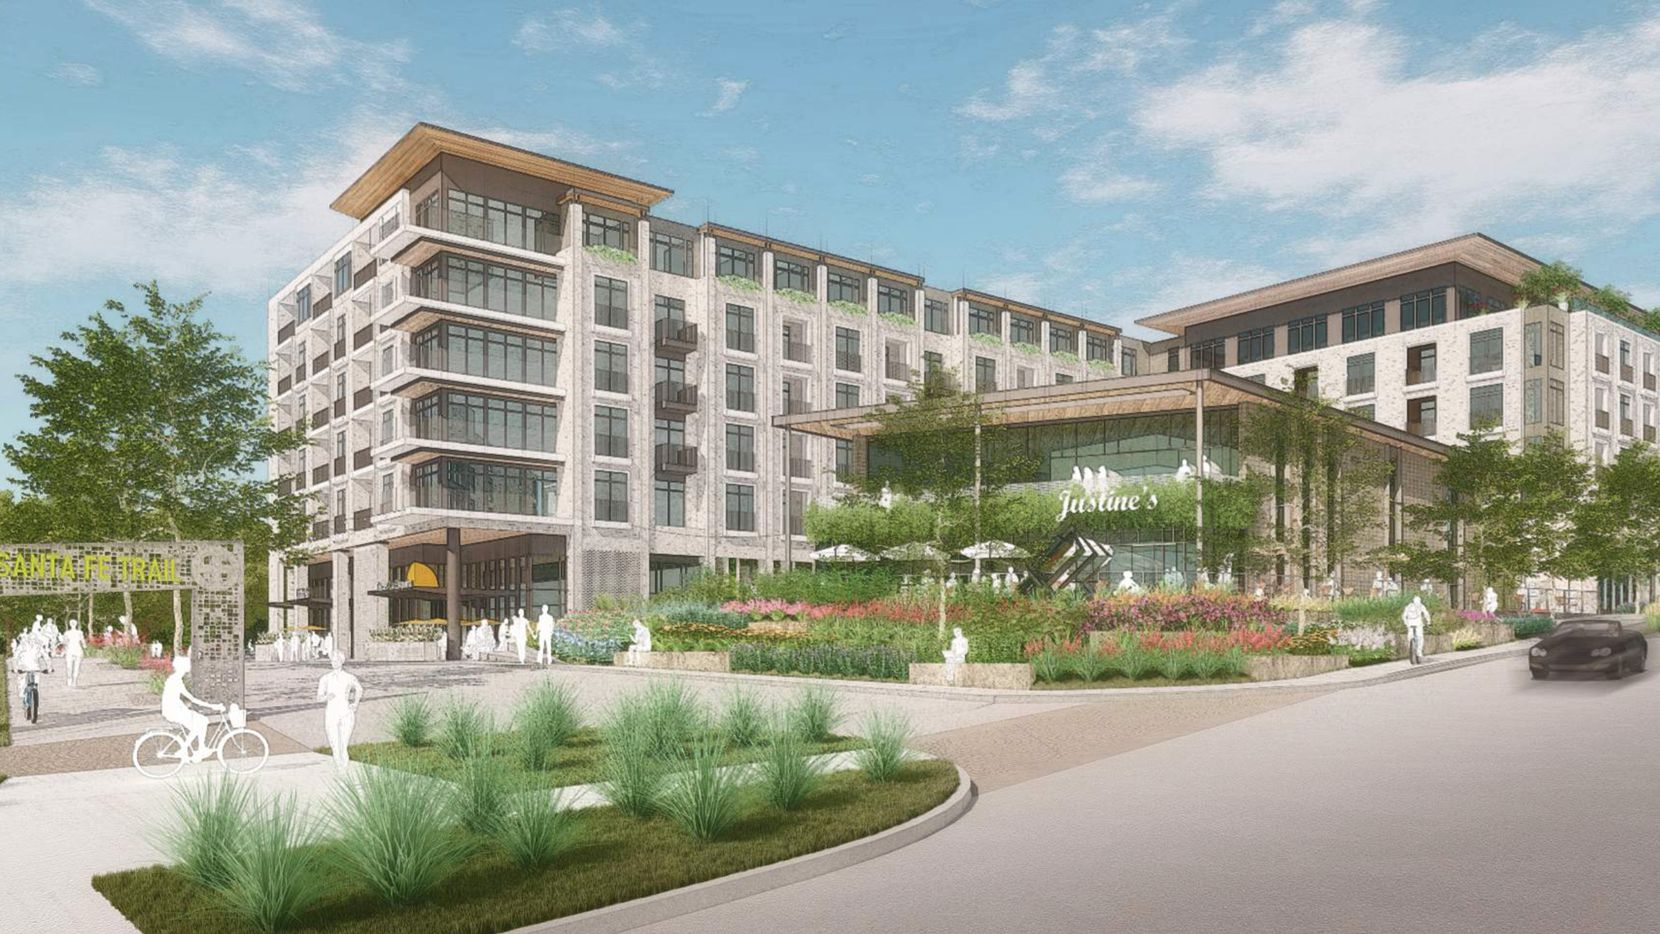 Developers will have to reduce the height of the proposed Trailhead project by about one floor under the zoning change approved by the city council.